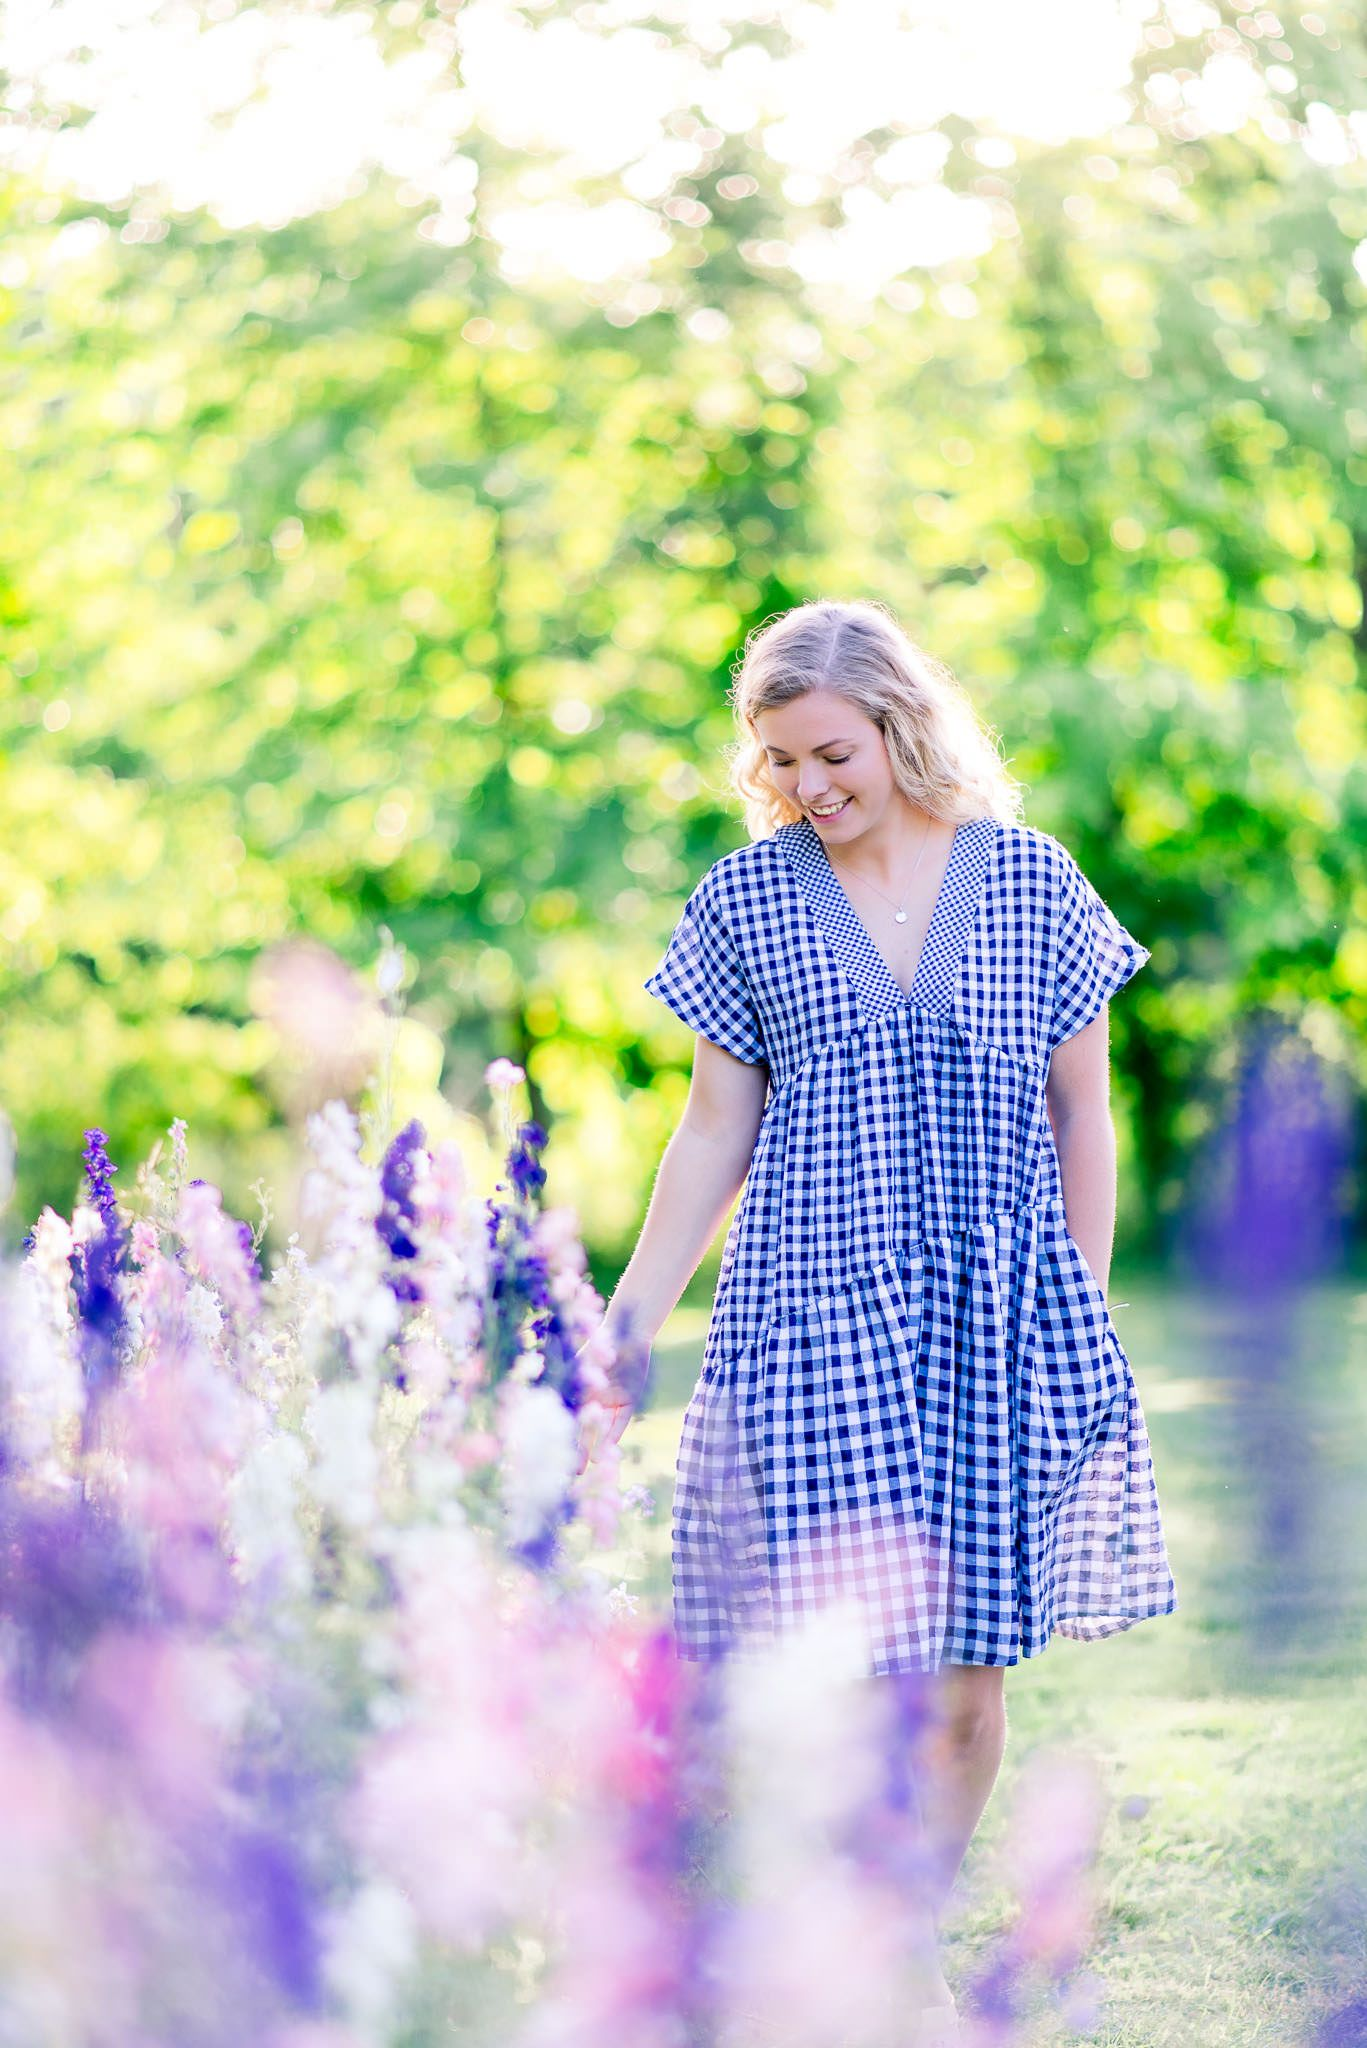 young woman in blue and white checkered dress smiling and looking at pink white and purple flower field